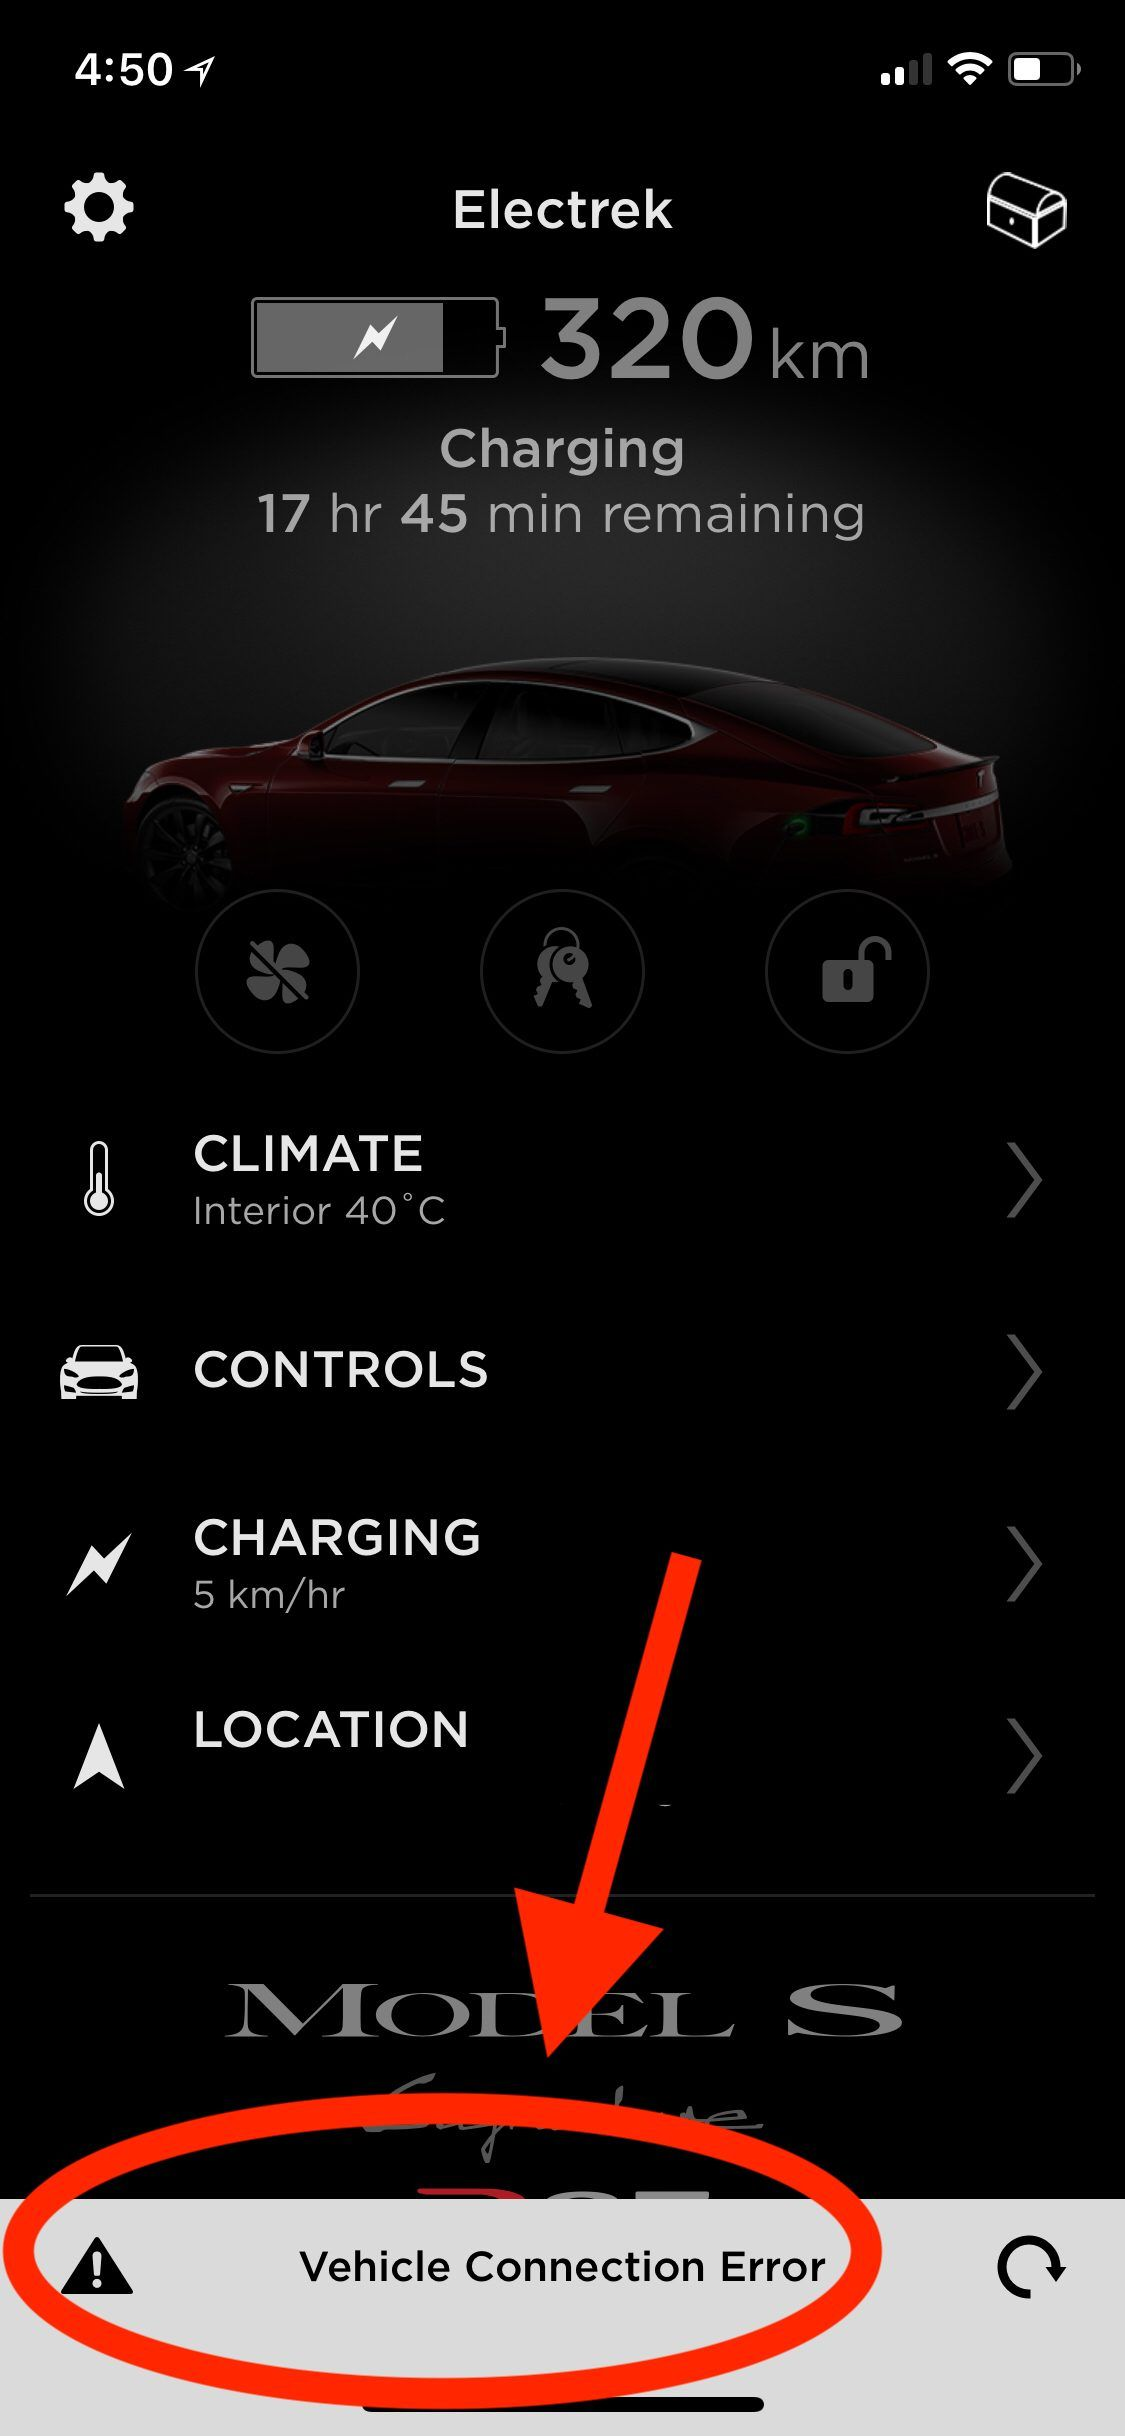 Tesla s fleet internet network is down [Updated] Tesla